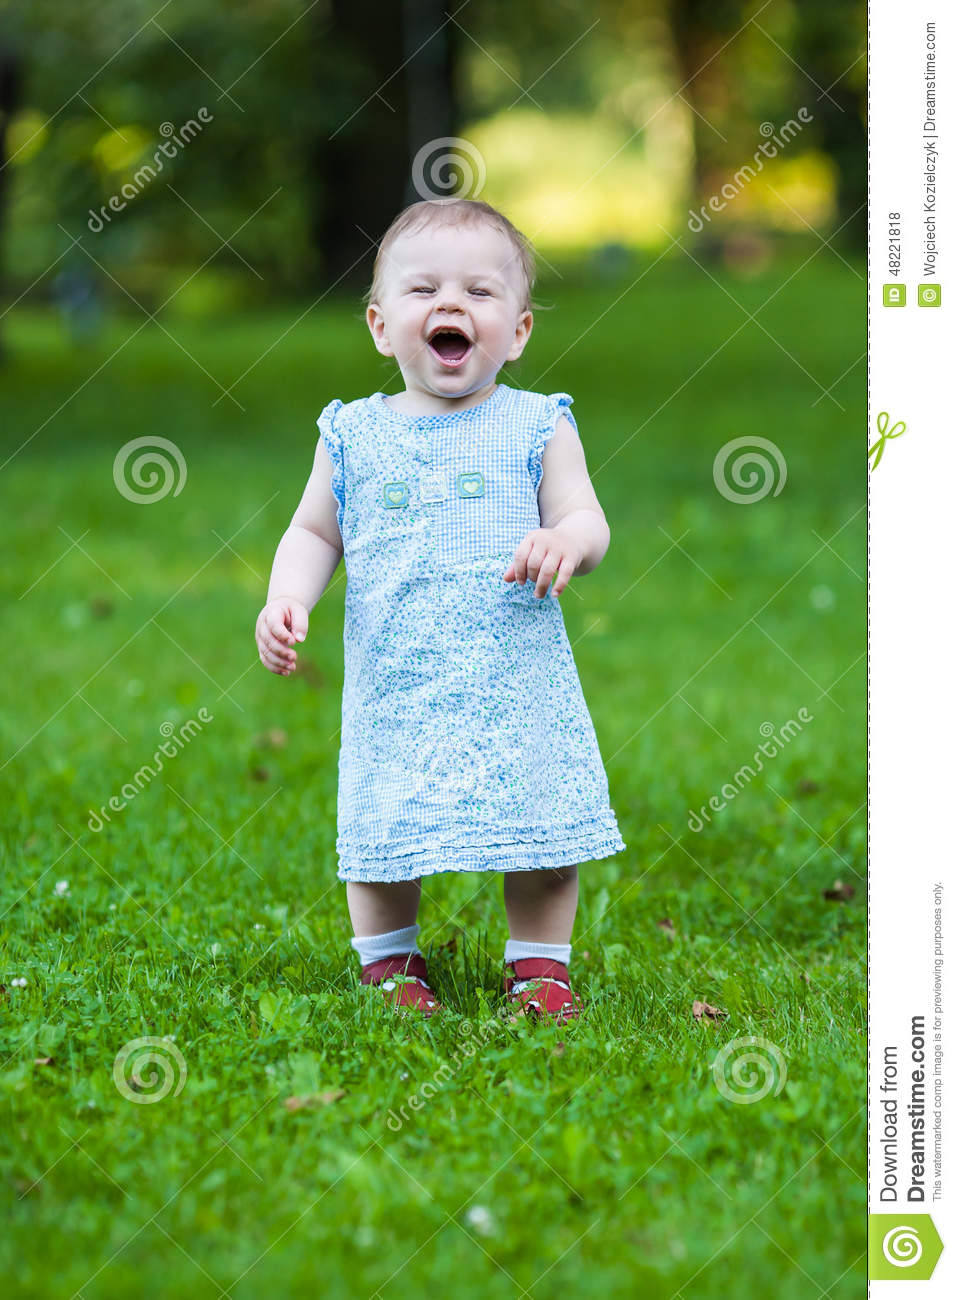 beautiful laughing cute baby girl stock photo - image of childhood